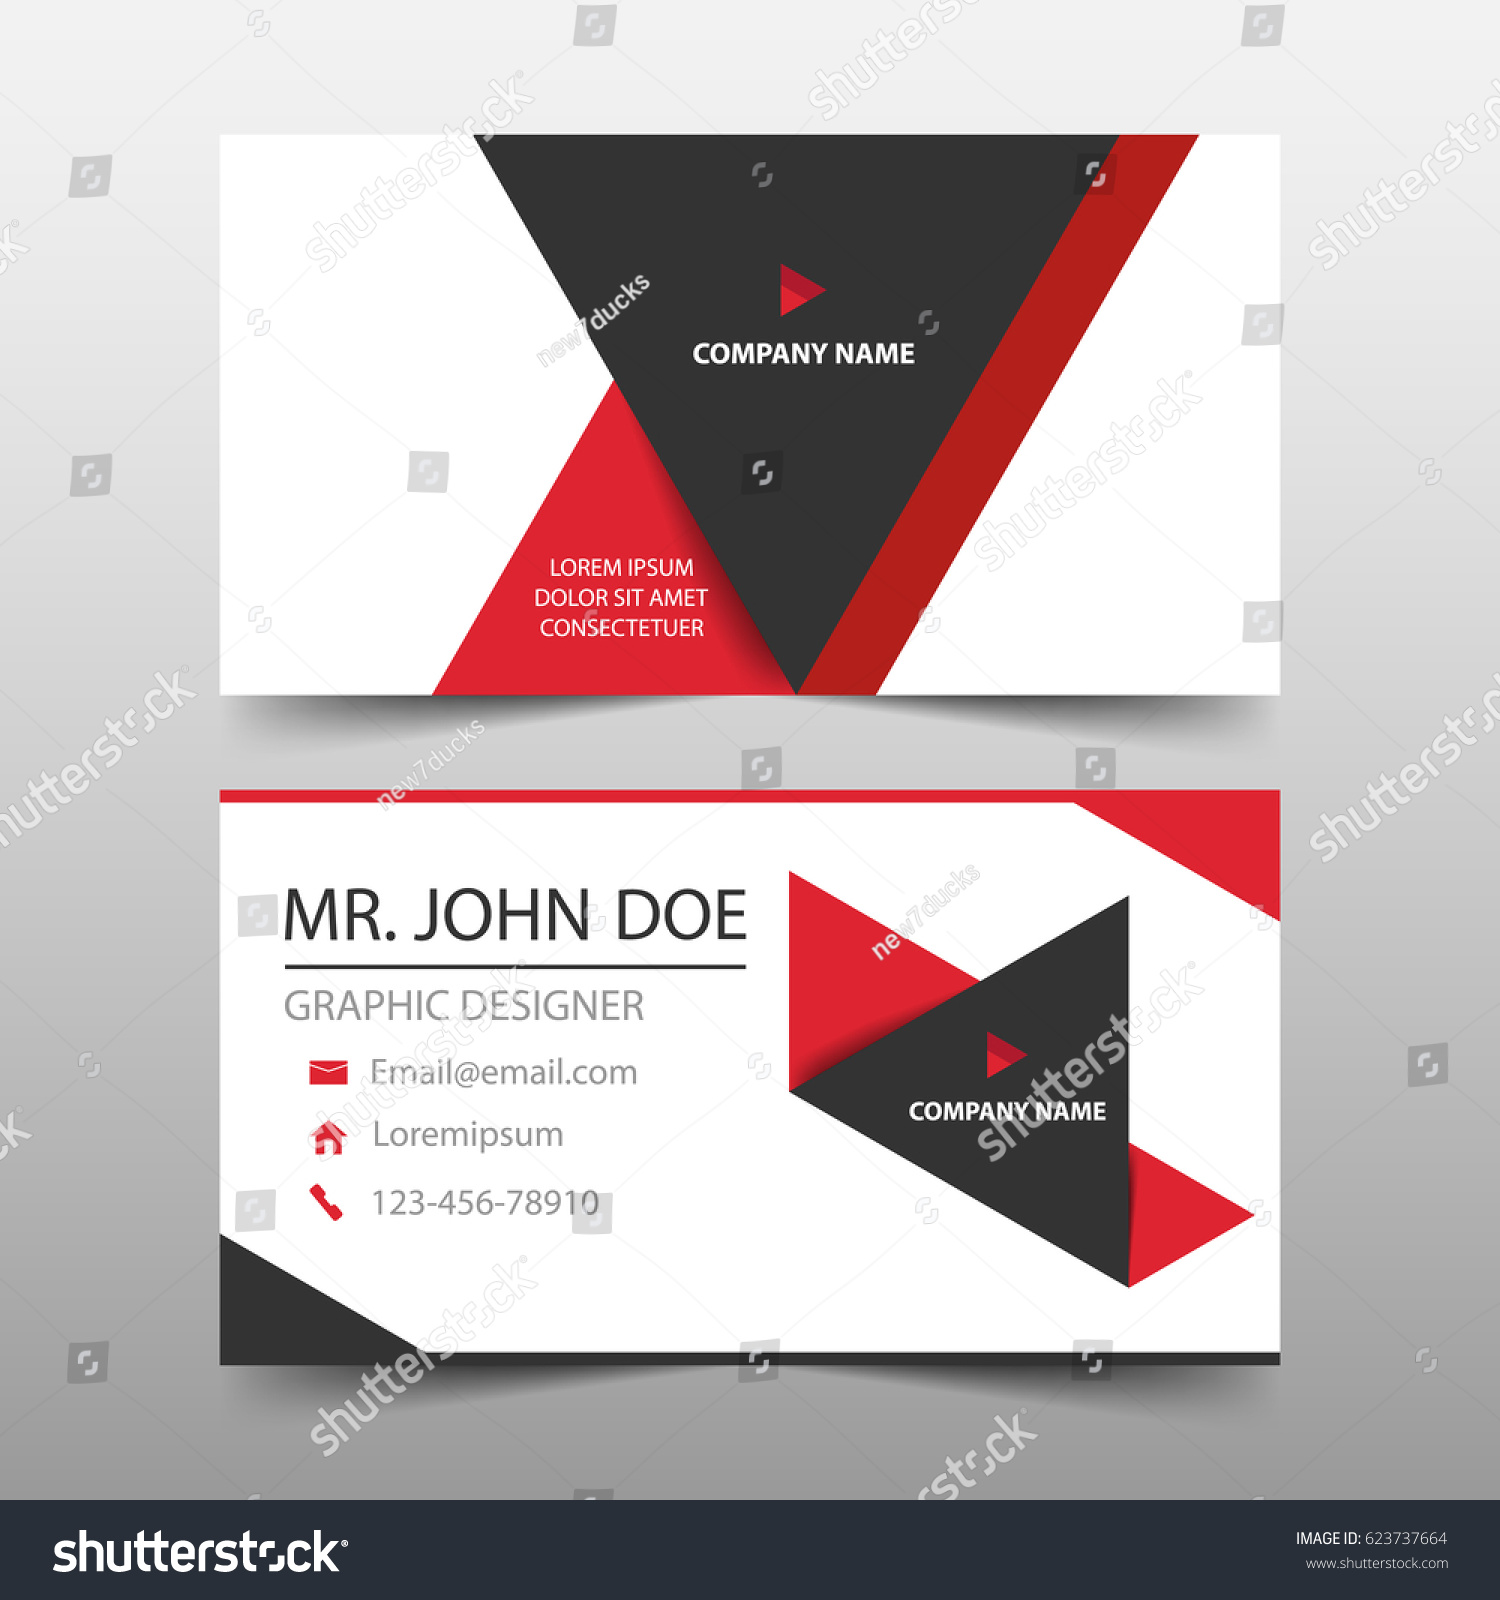 Red Triangle Corporate Business Card Name Stock Vector 623737664 ...